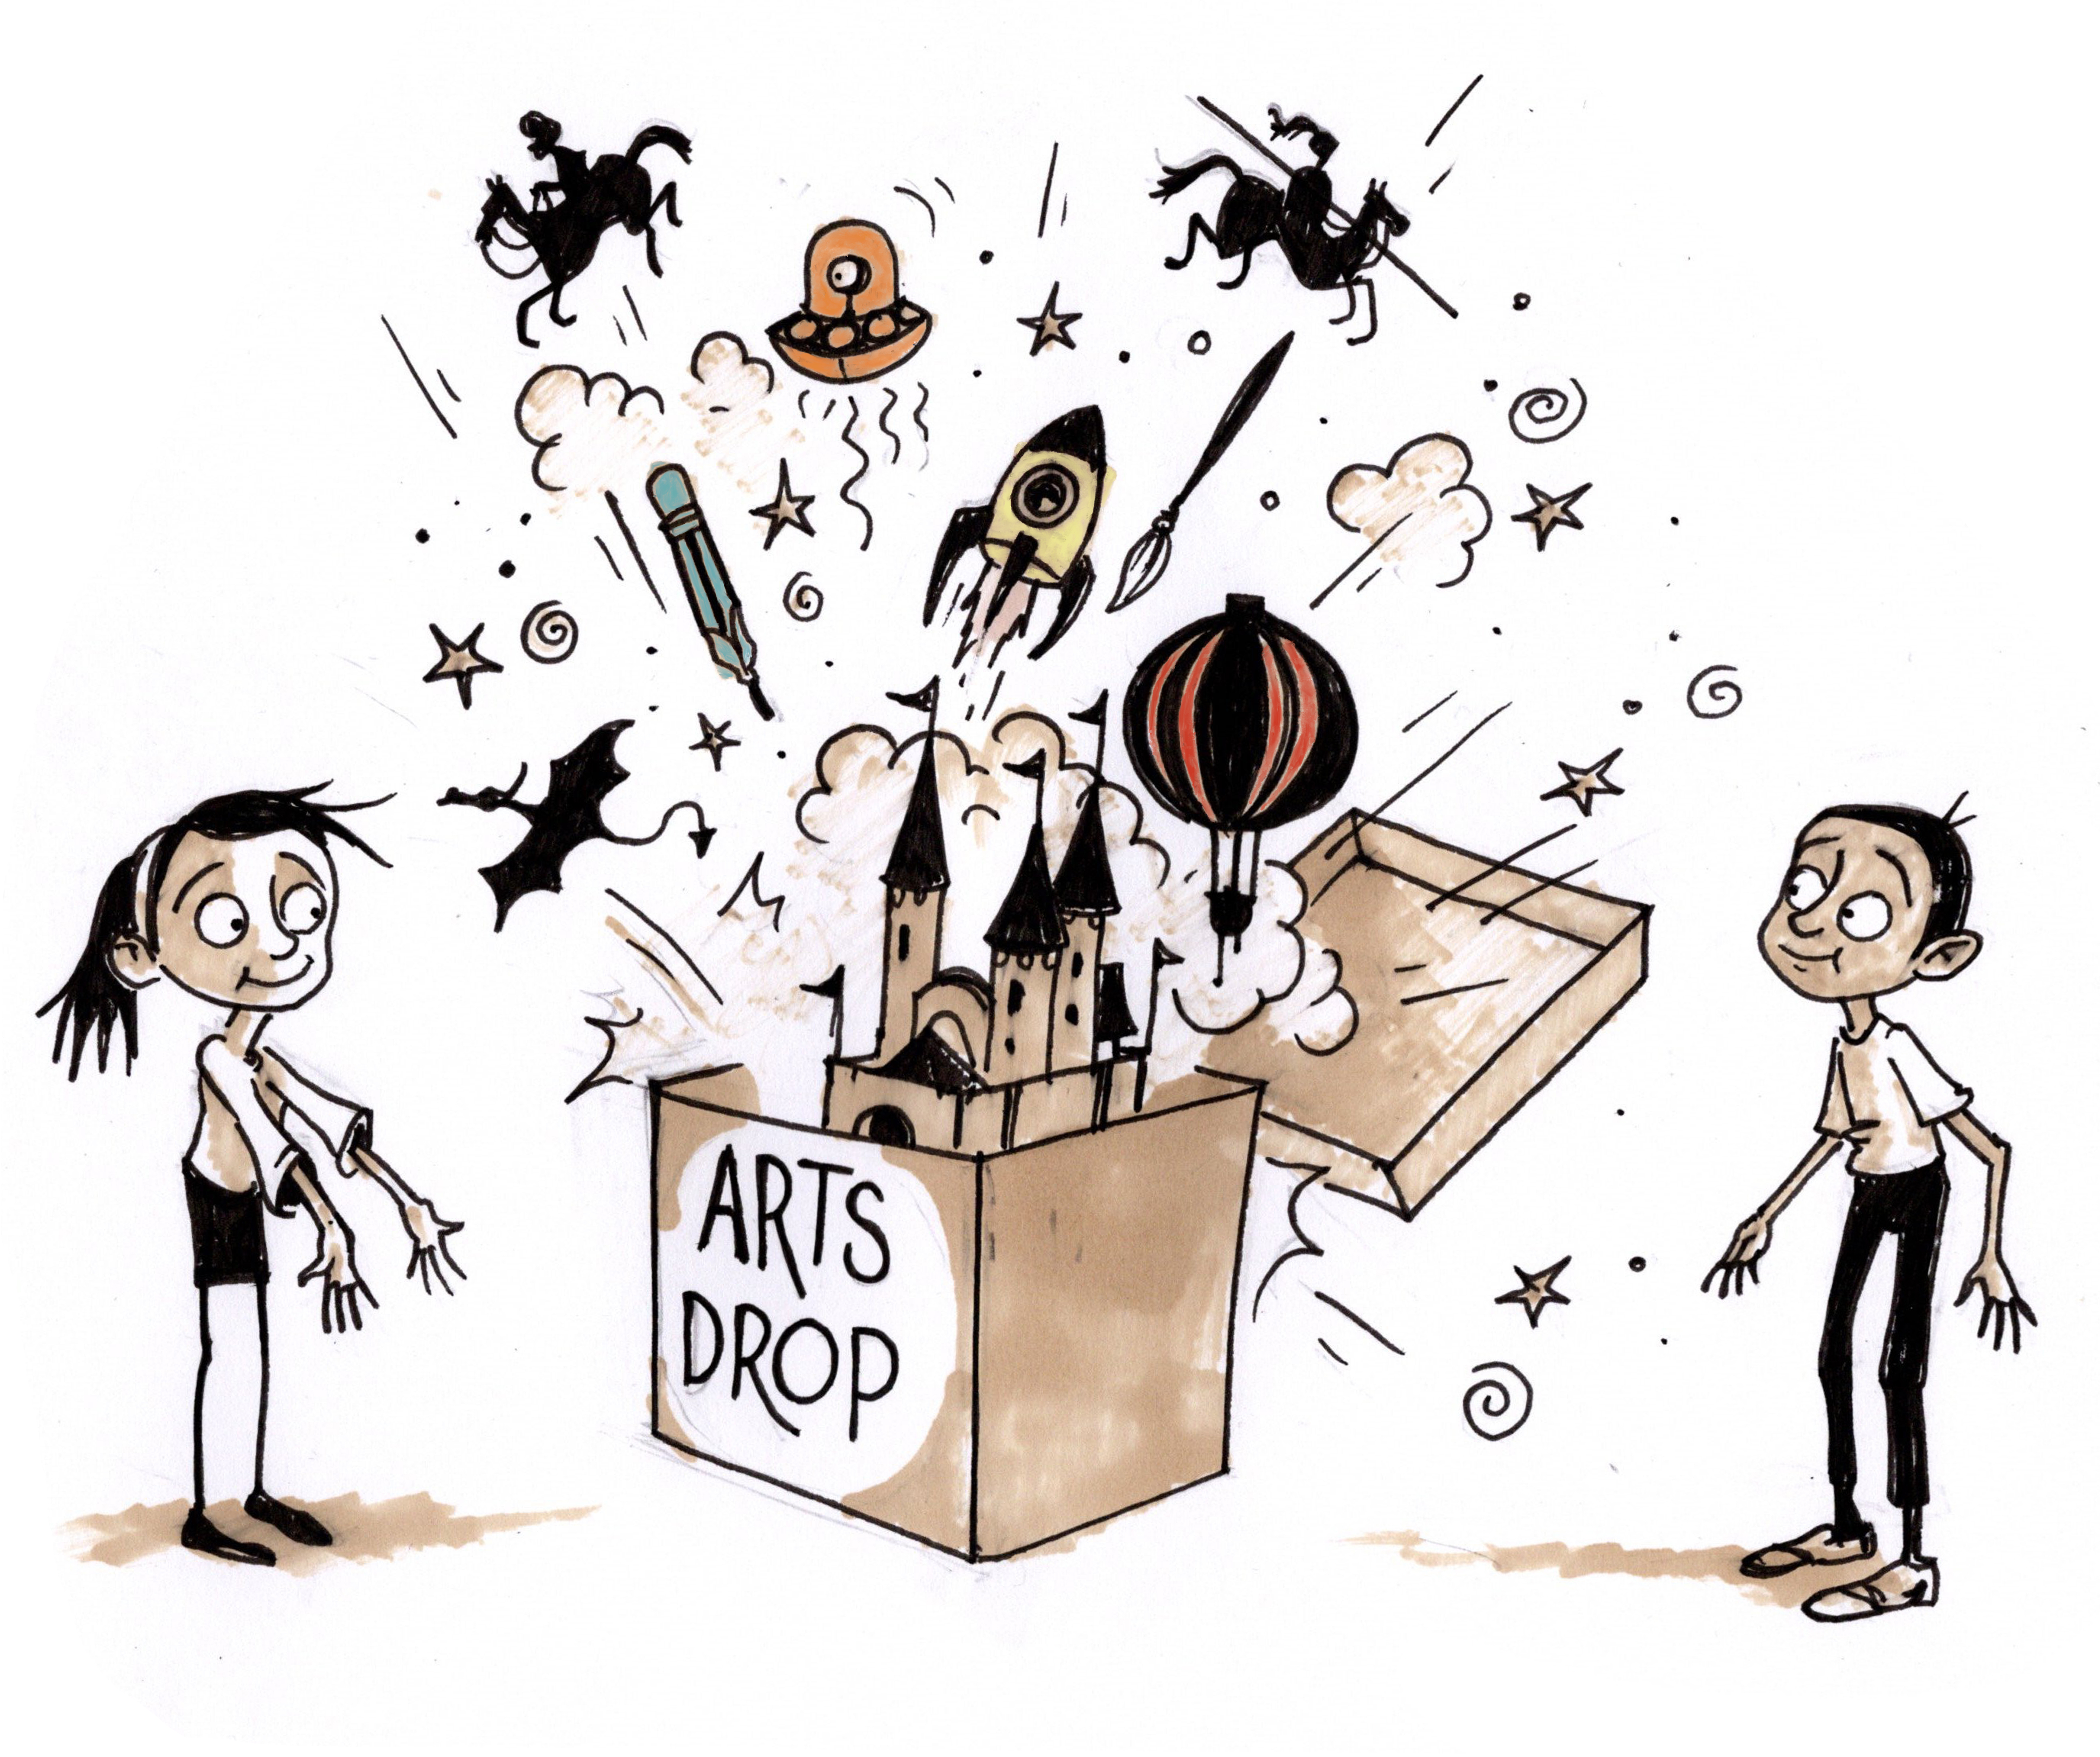 Collaborate with Arts Drop graphic